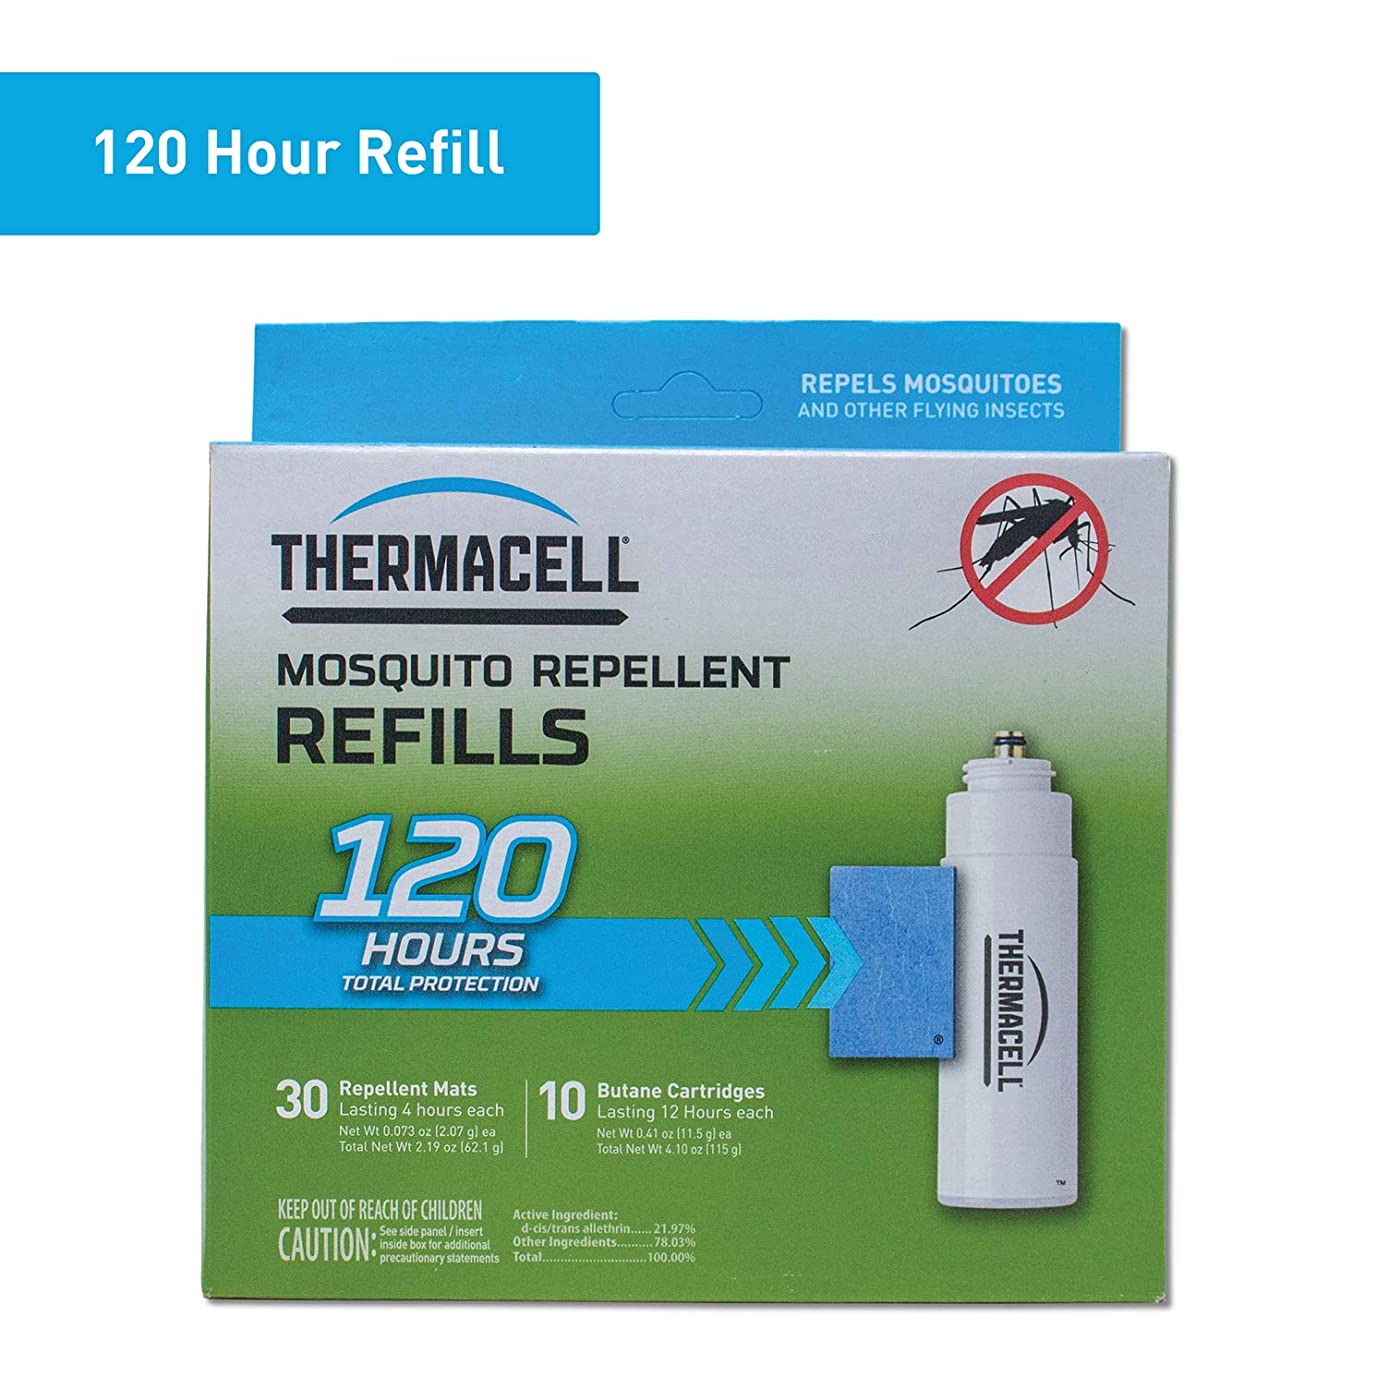 Thermacell Mosquito Repellent Refills, 120-Hr Pack; Contains 30 Repellent Mats, 10 Fuel Cartridges; Compatible with Any Fuel-Powered Product; No Spray, Scent, Mess; 15 Ft Zone of Protection